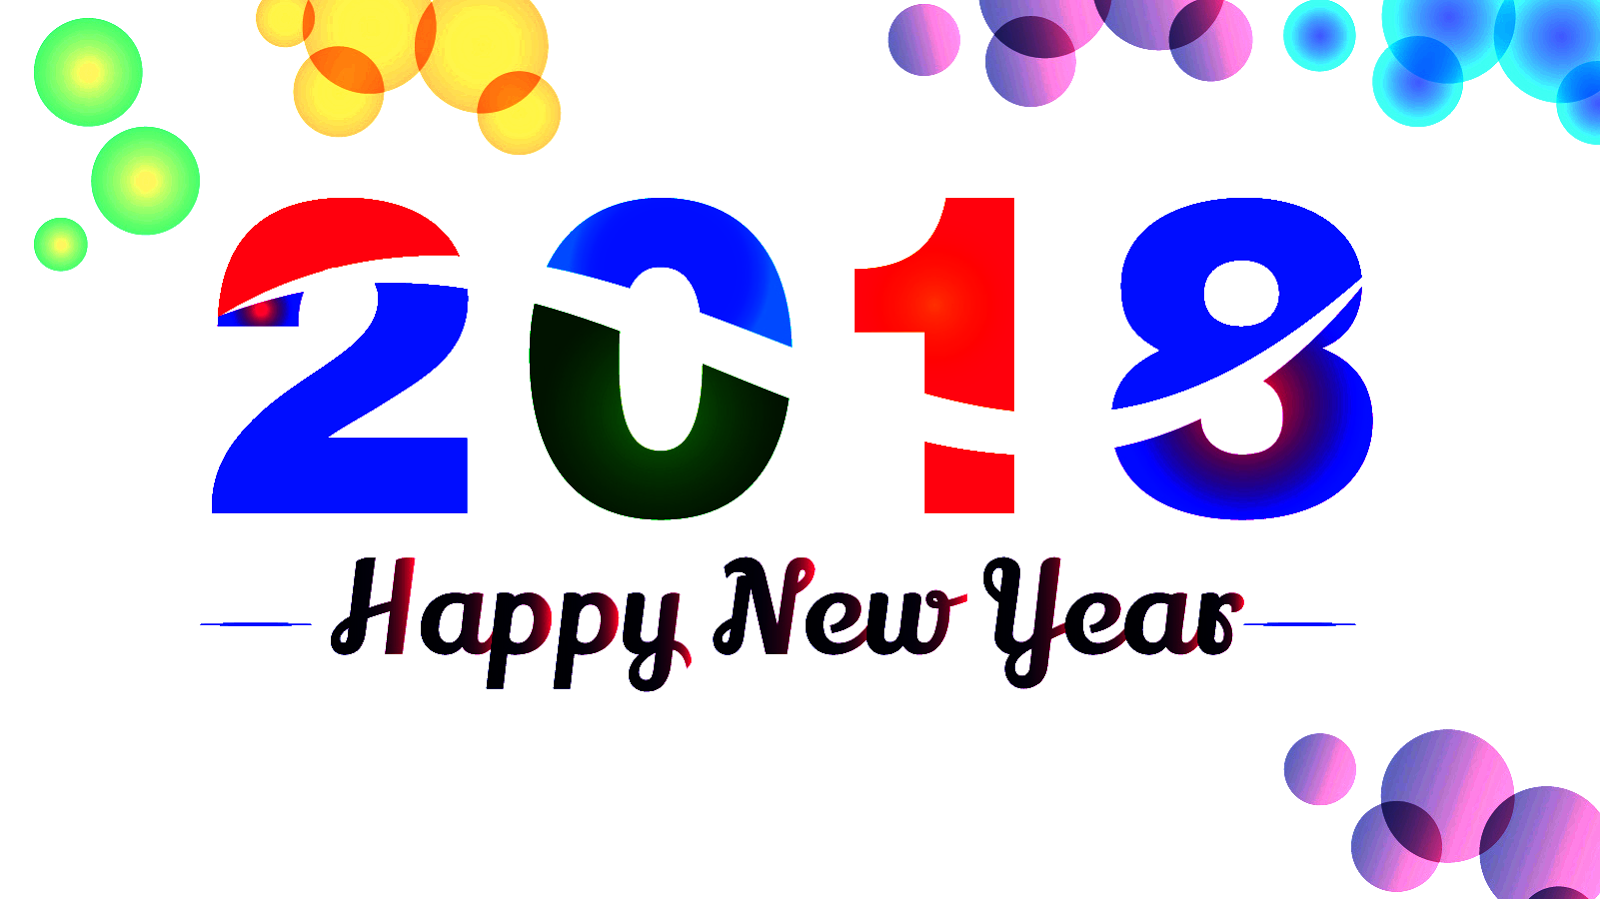 2018 clipart new year. Free happy wish you